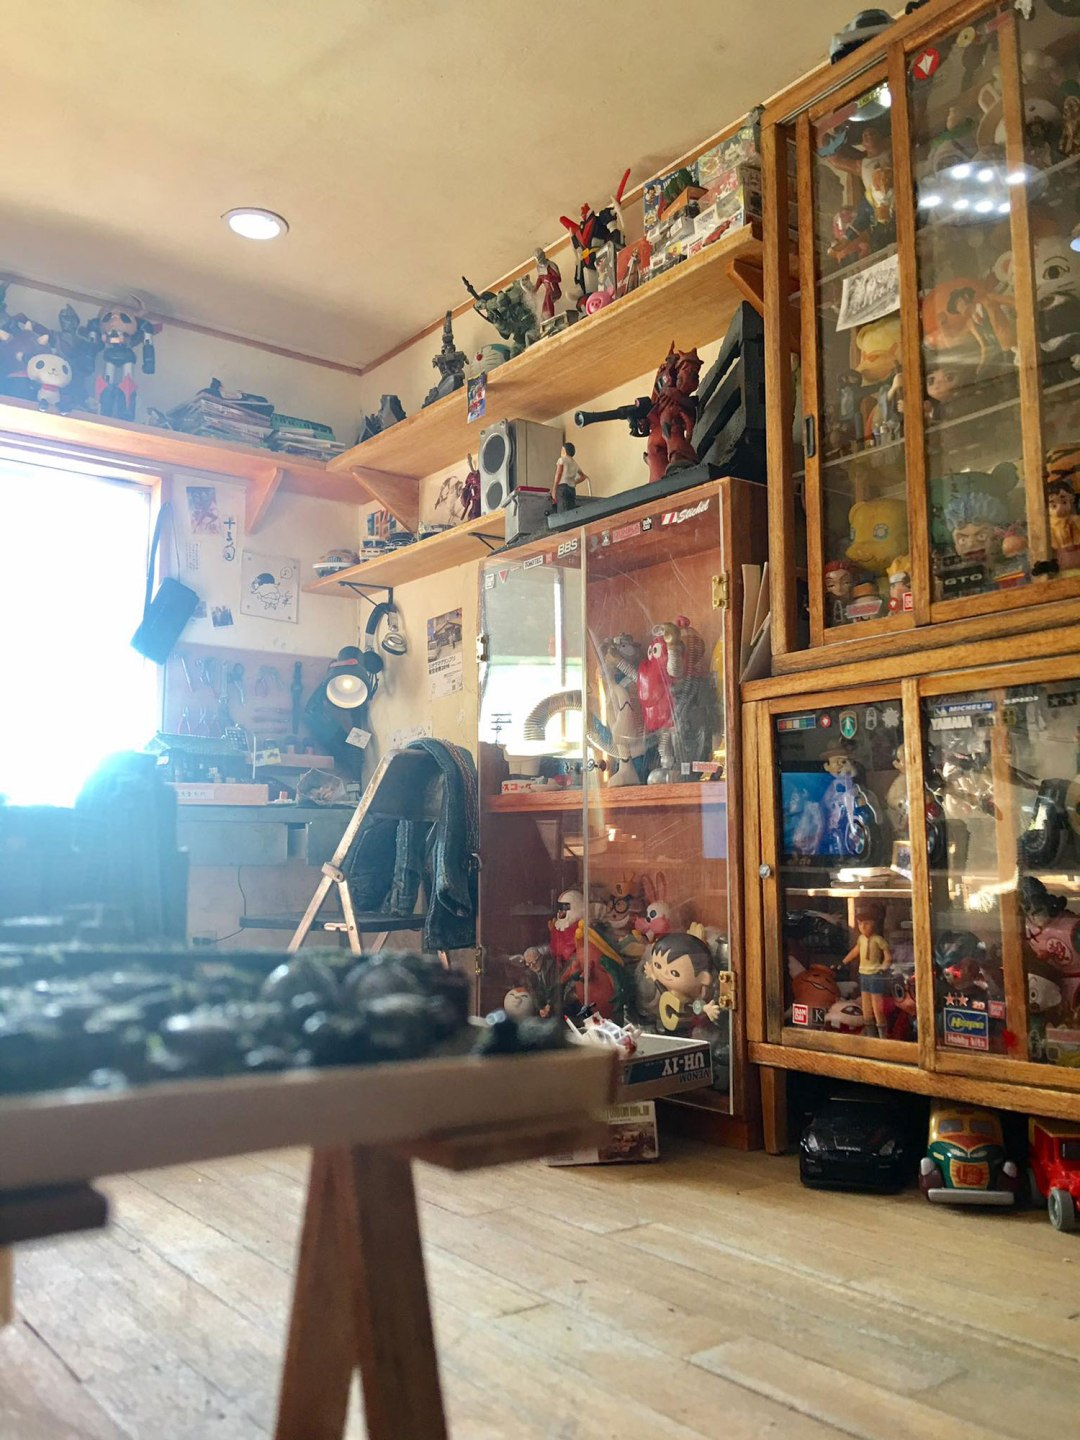 ARTIST MAKES MINIATURE MODEL OF HIS ROOM 18